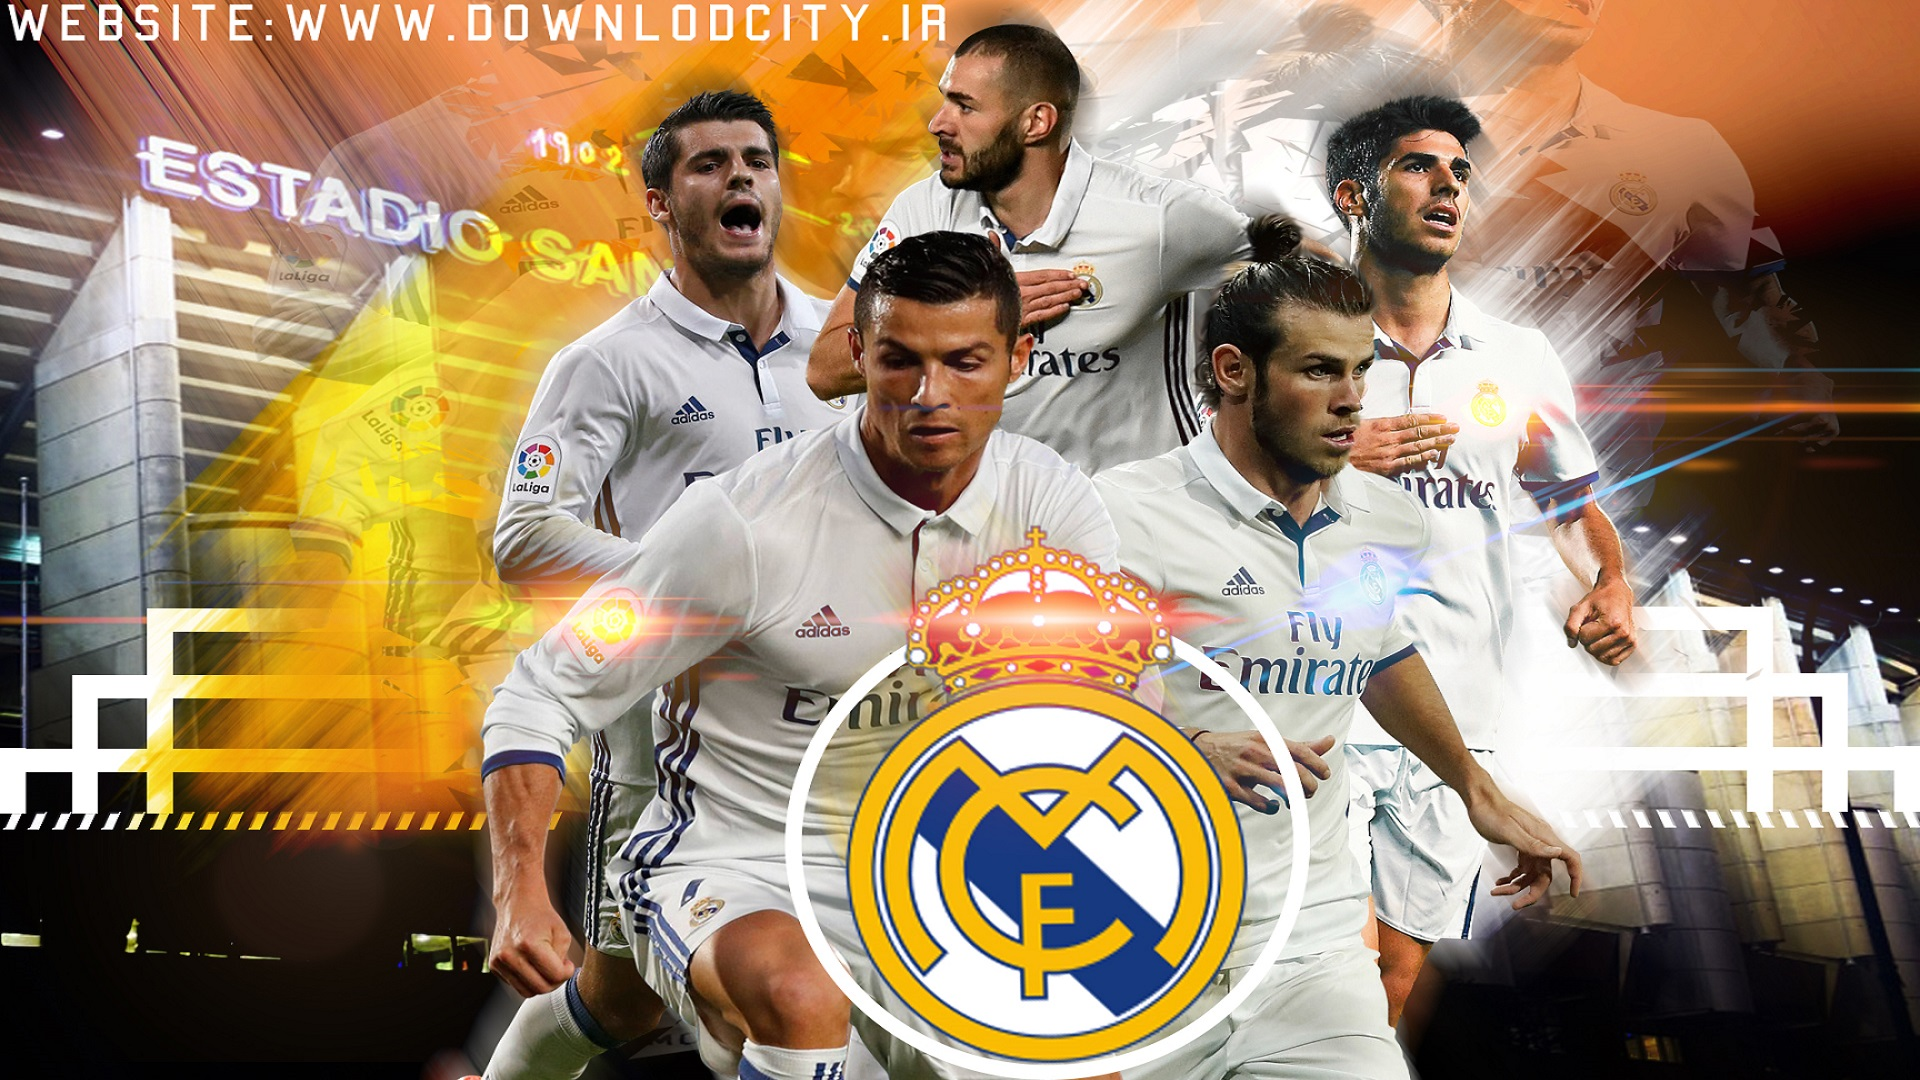 http://s9.picofile.com/file/8277757318/Wallpapers_real_madrid_www_Downlodcity_ir_.jpg